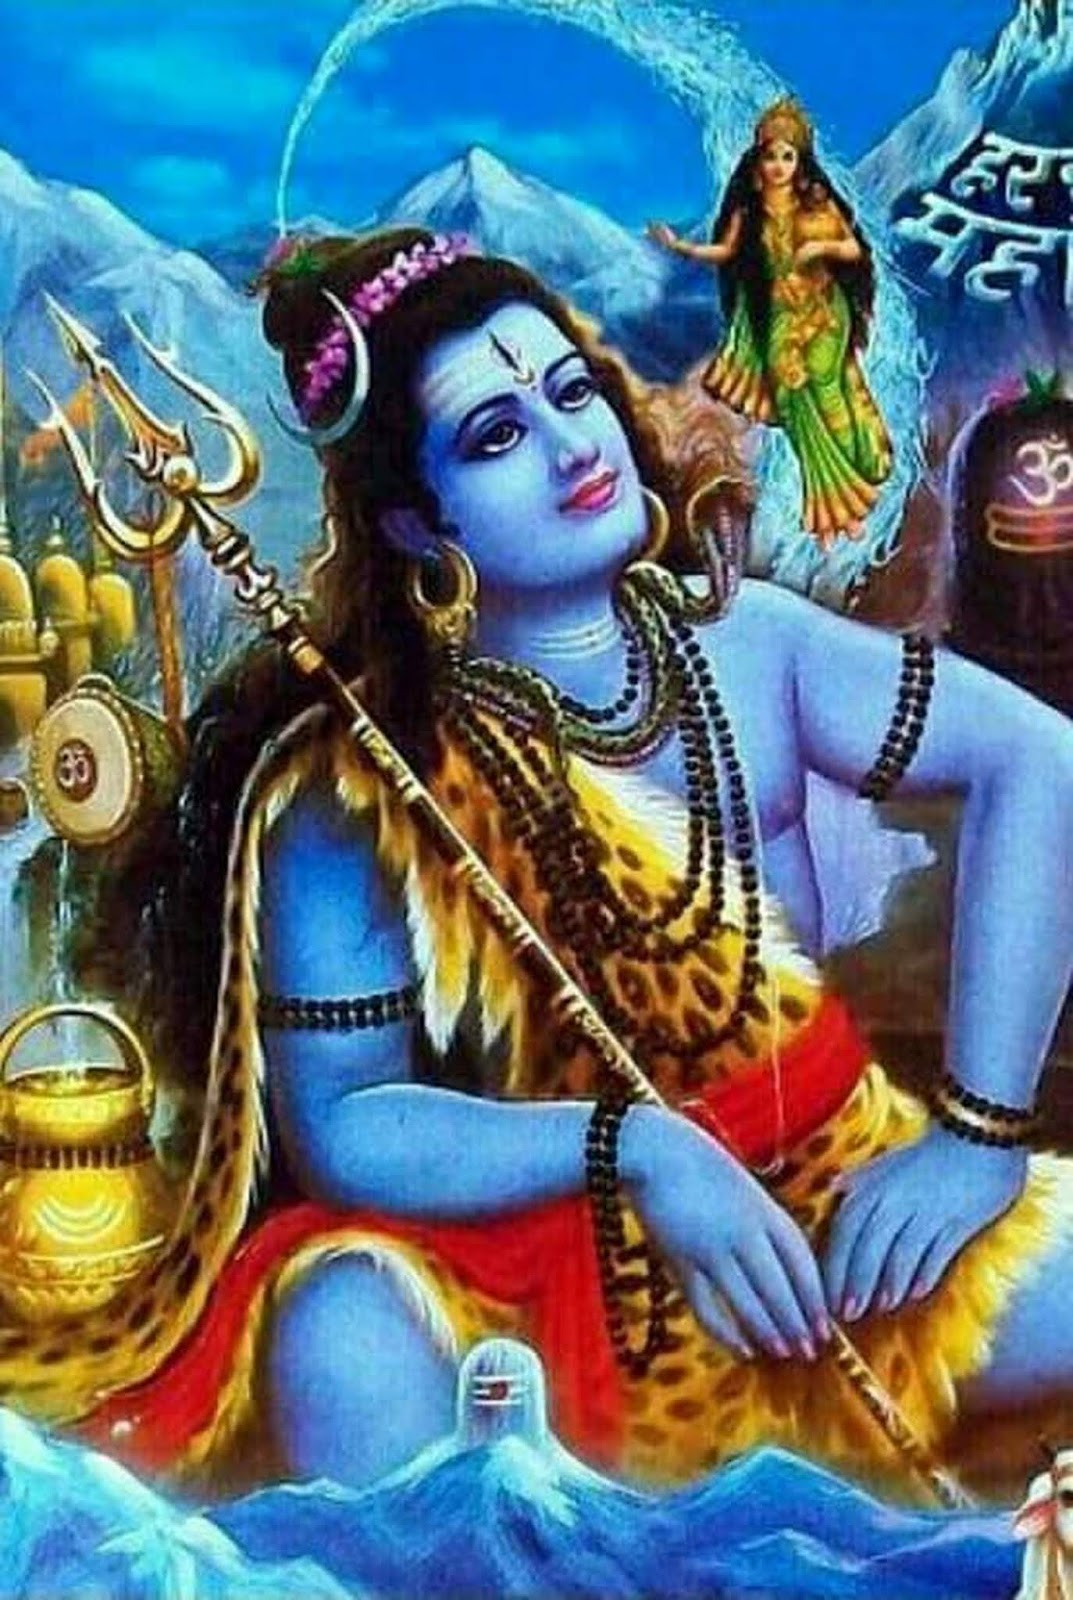 Lord%2BShiva%2BAngry%2BImages%2B%25281%2529